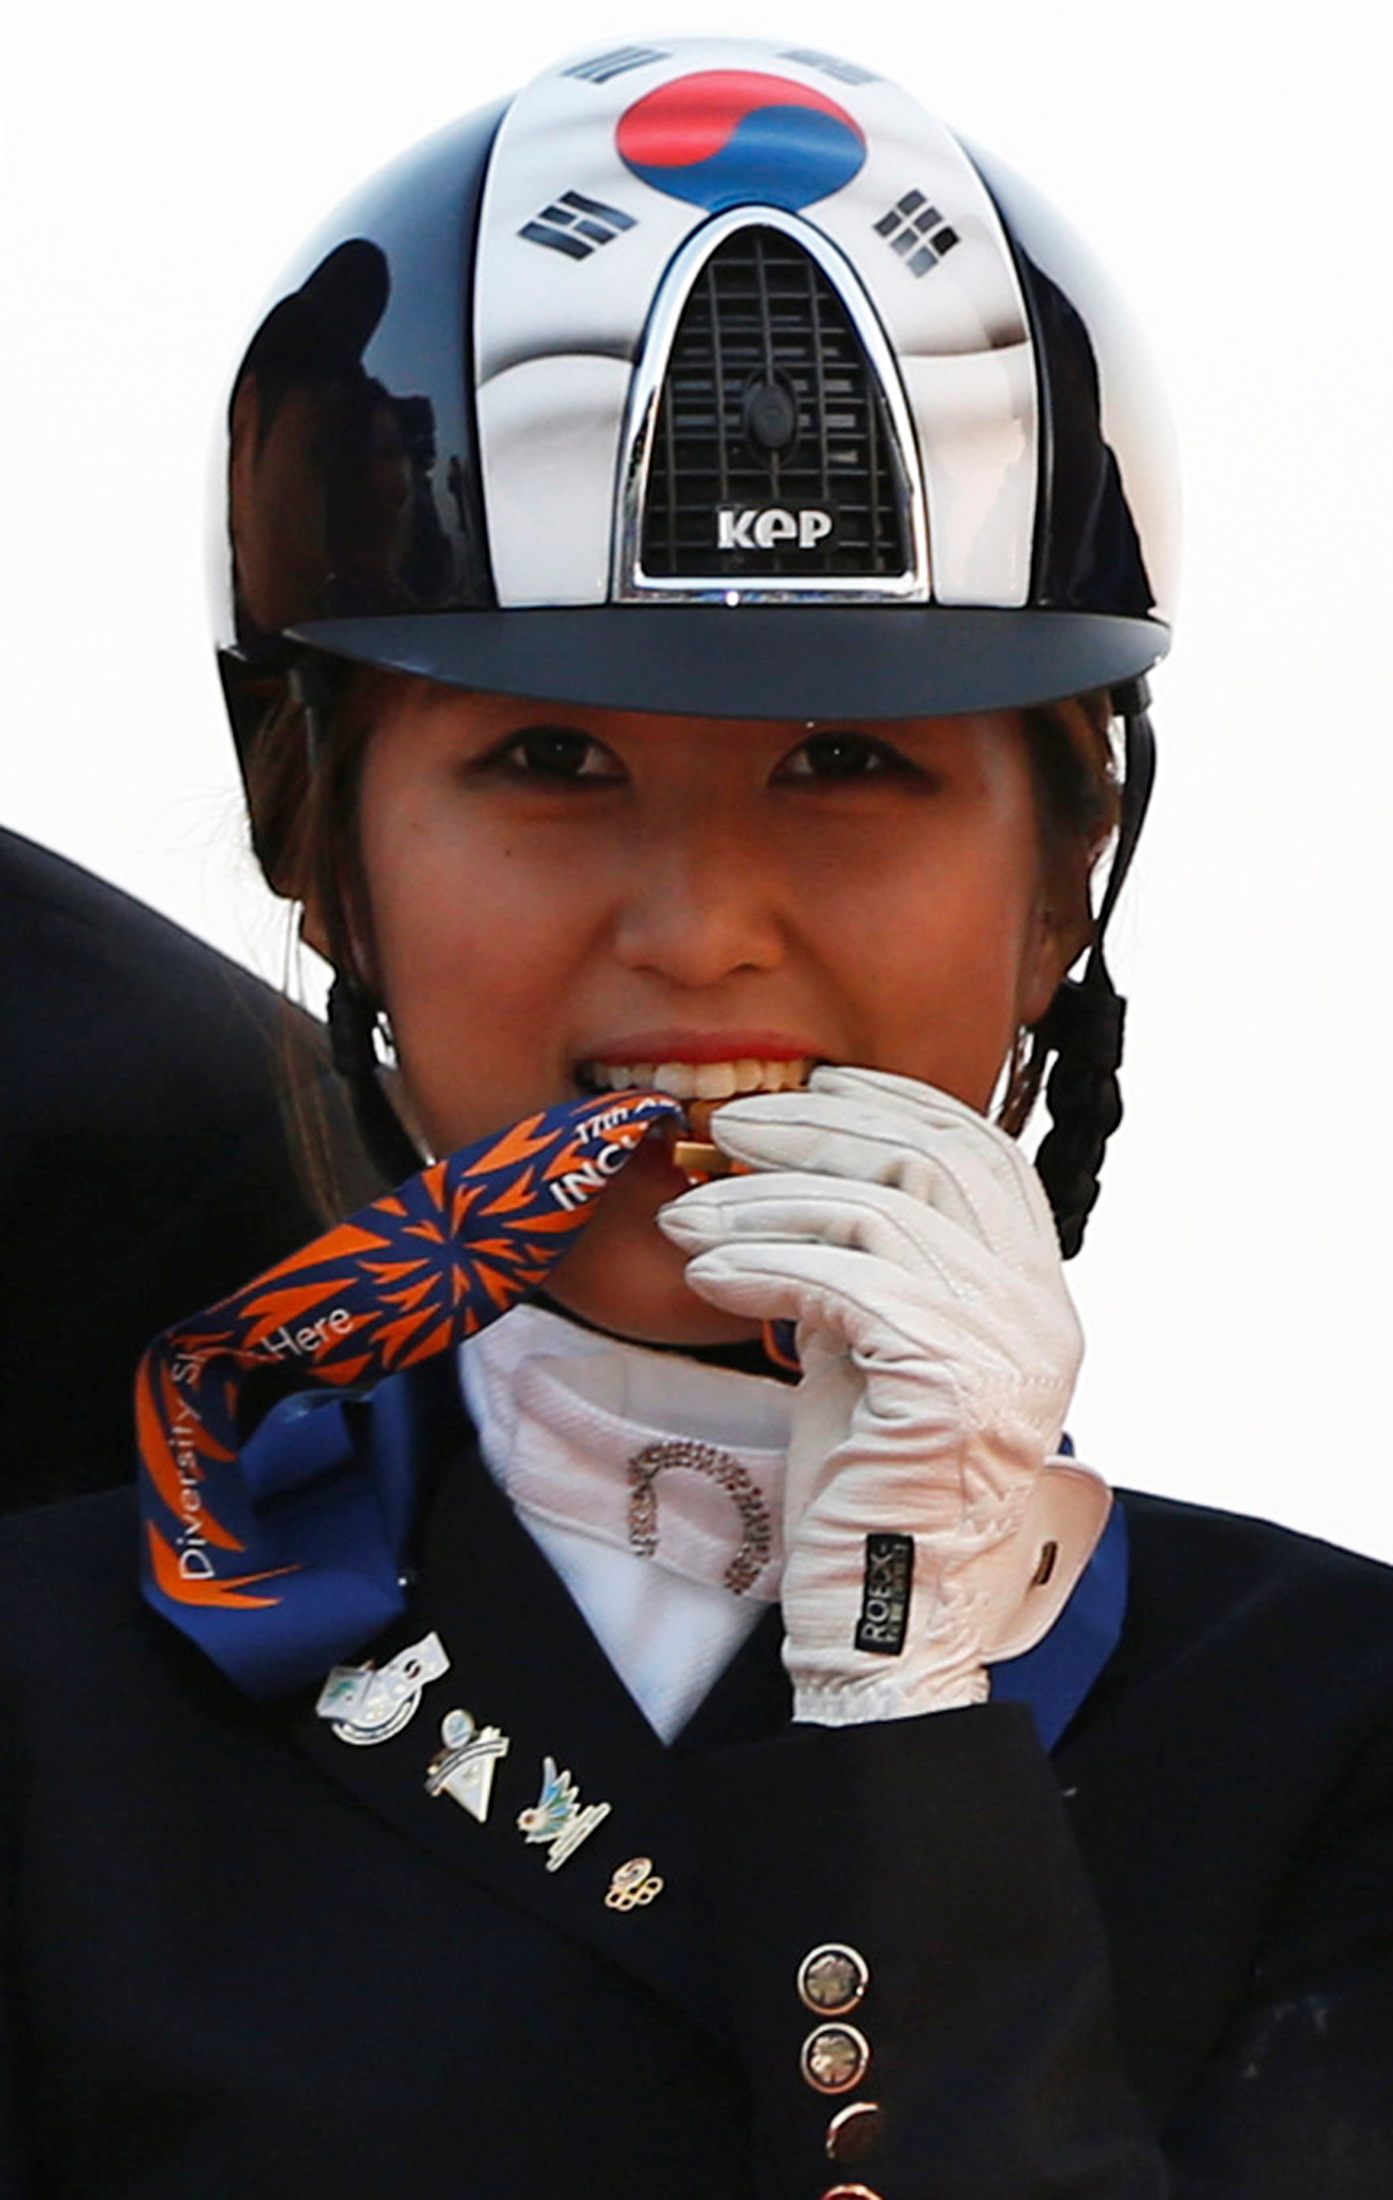 Chung Yoo-ra, then known as Chung Yoo-yeon, after winning the equestrian Dressage Team competition at the 17th Asian Games in Sept. 20, 2014.